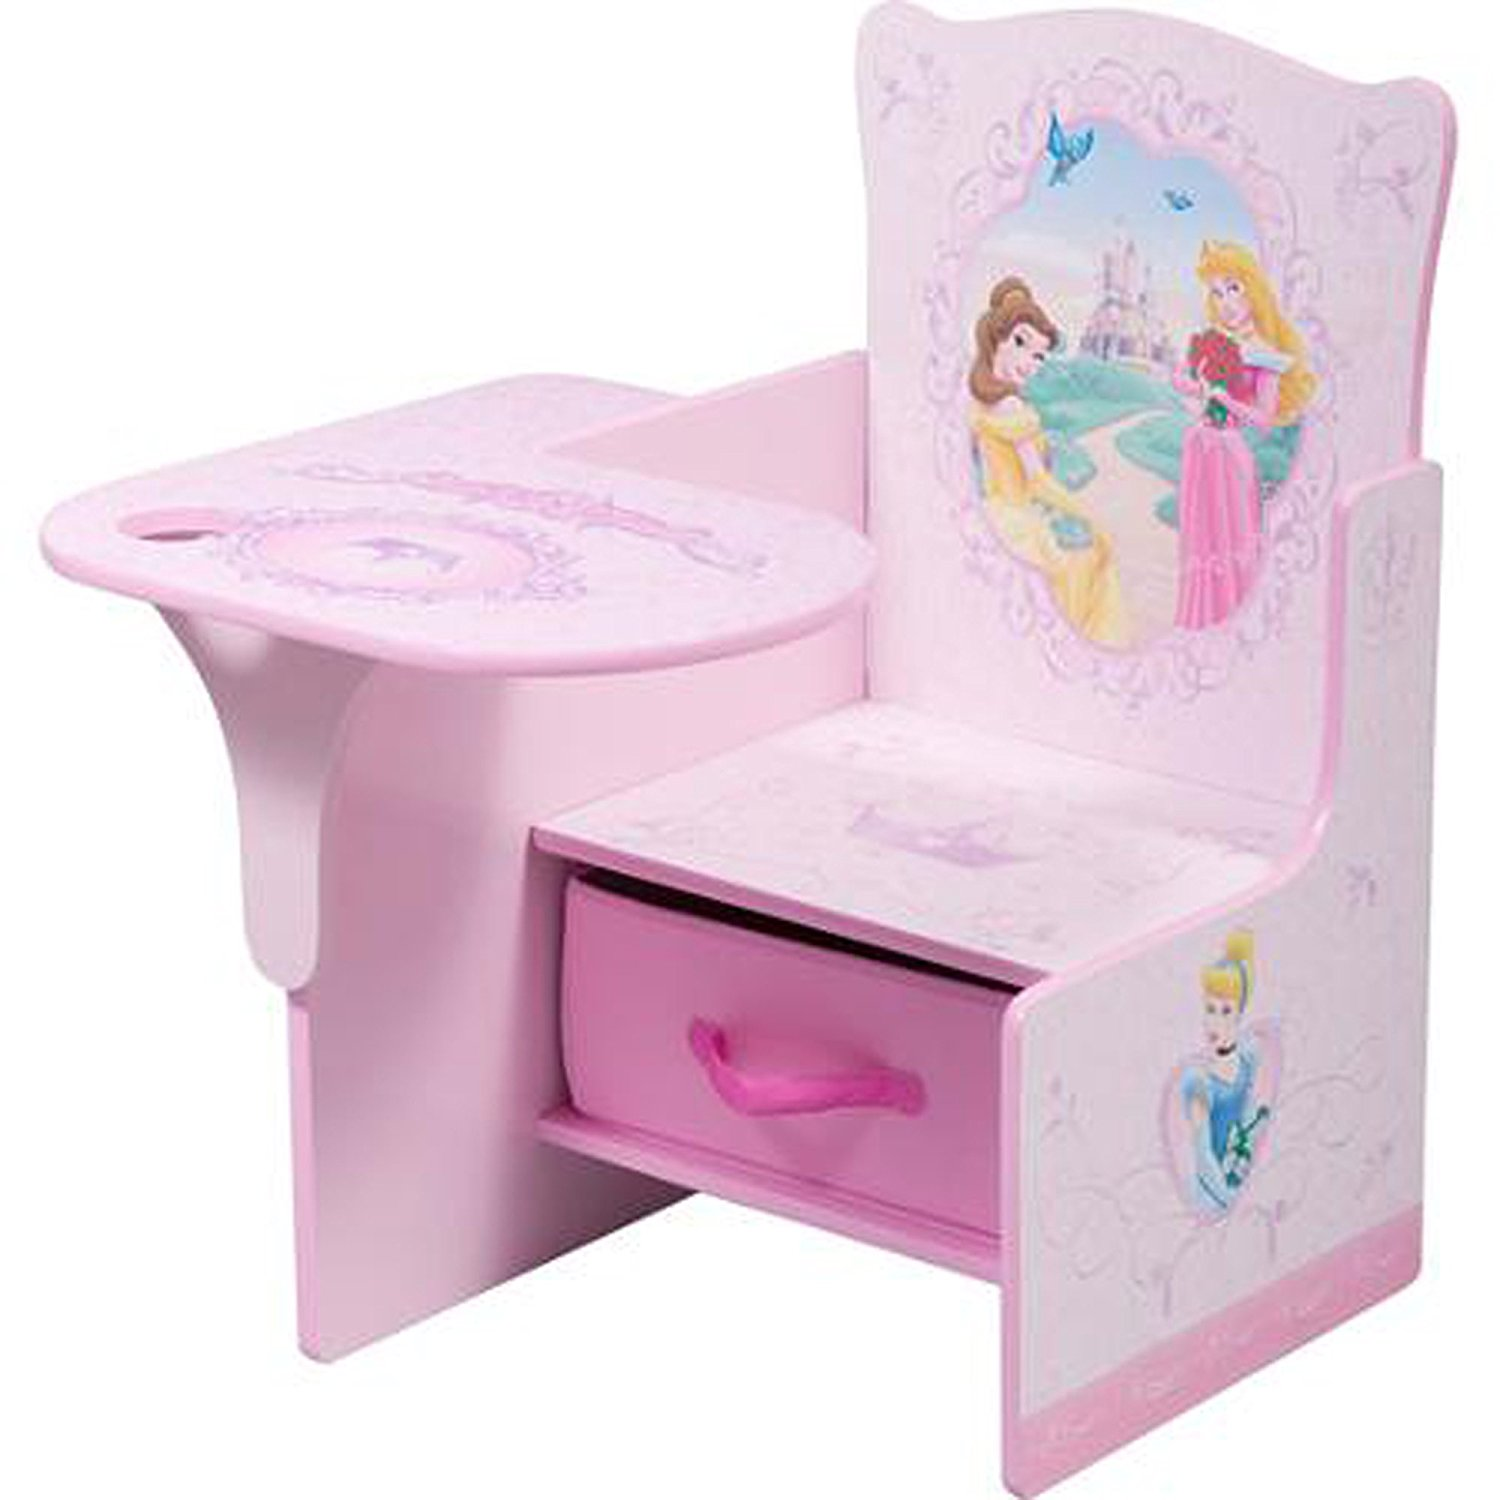 Disney Chair Desk With Storage Bin Princess Characters Fabric Storage Bin Seat Extra Storage Table Toddler Desk Chair MDF Construction Durable Assembly Required Sits Low Children Furniture